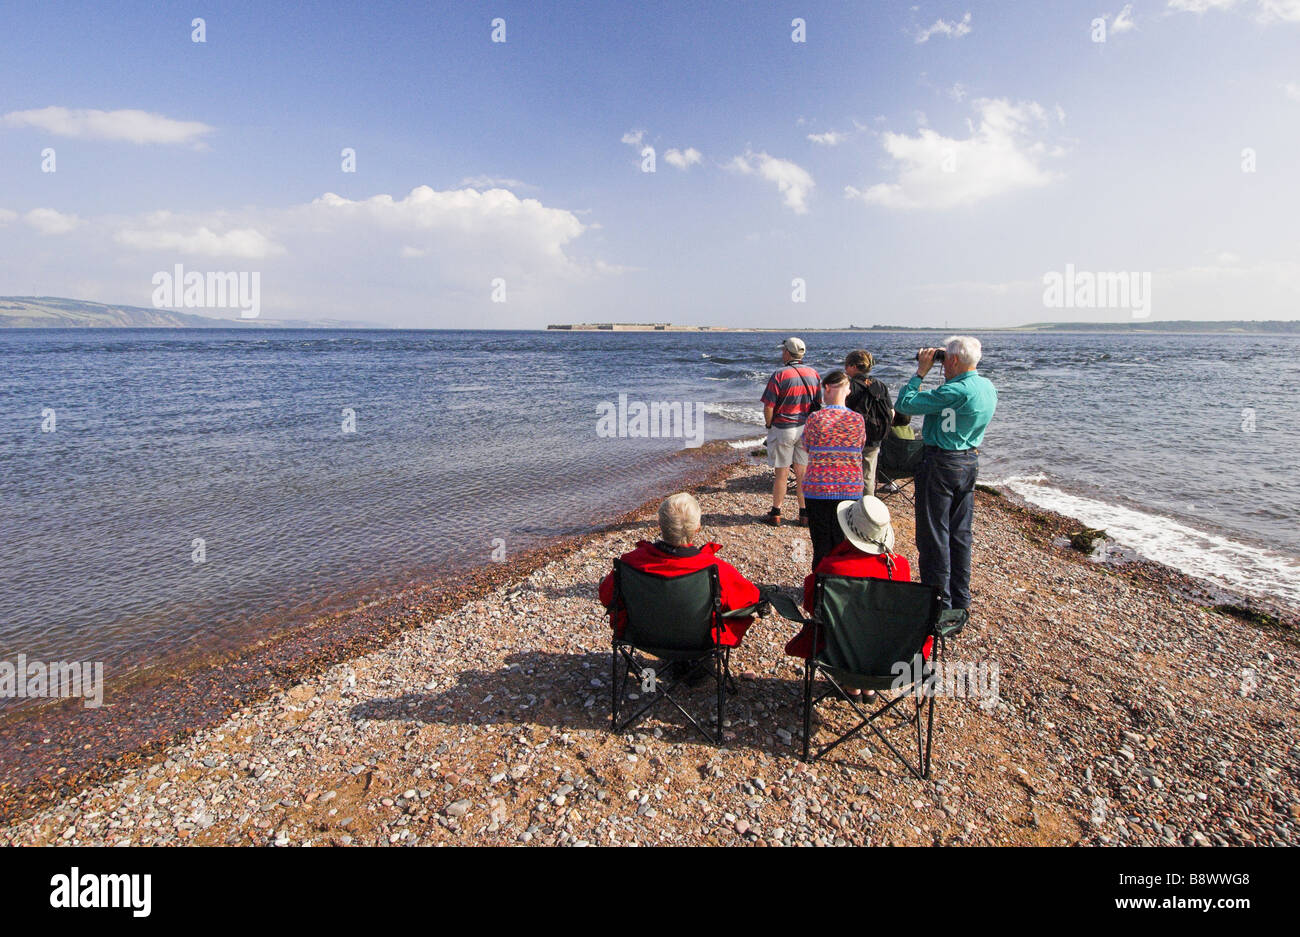 People dolphin-watching from Chanonry Point on the Moray Firth, Scotland. - Stock Image